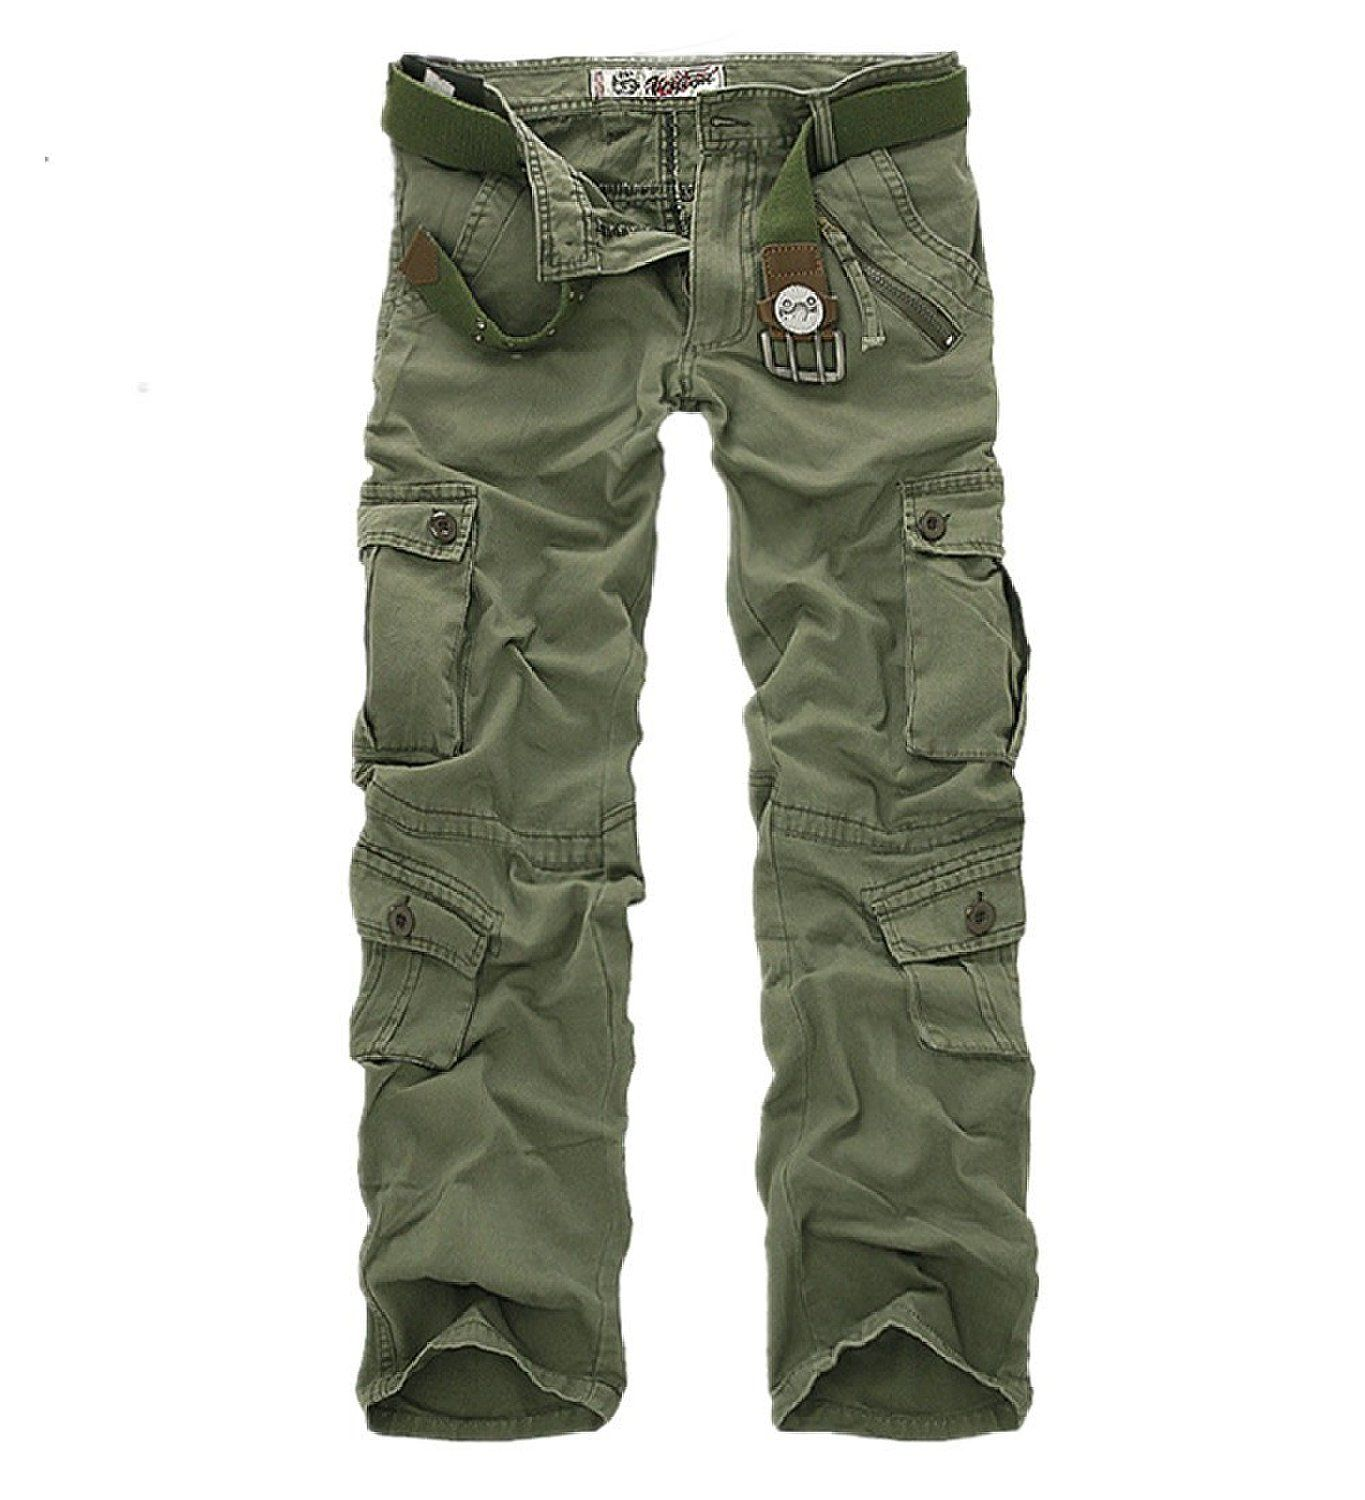 21c76d8fe2cf2 Crazy Men's Woodland Military Cargo Outdoors Pants Combat Trousers: Amazon. co.uk: Clothing